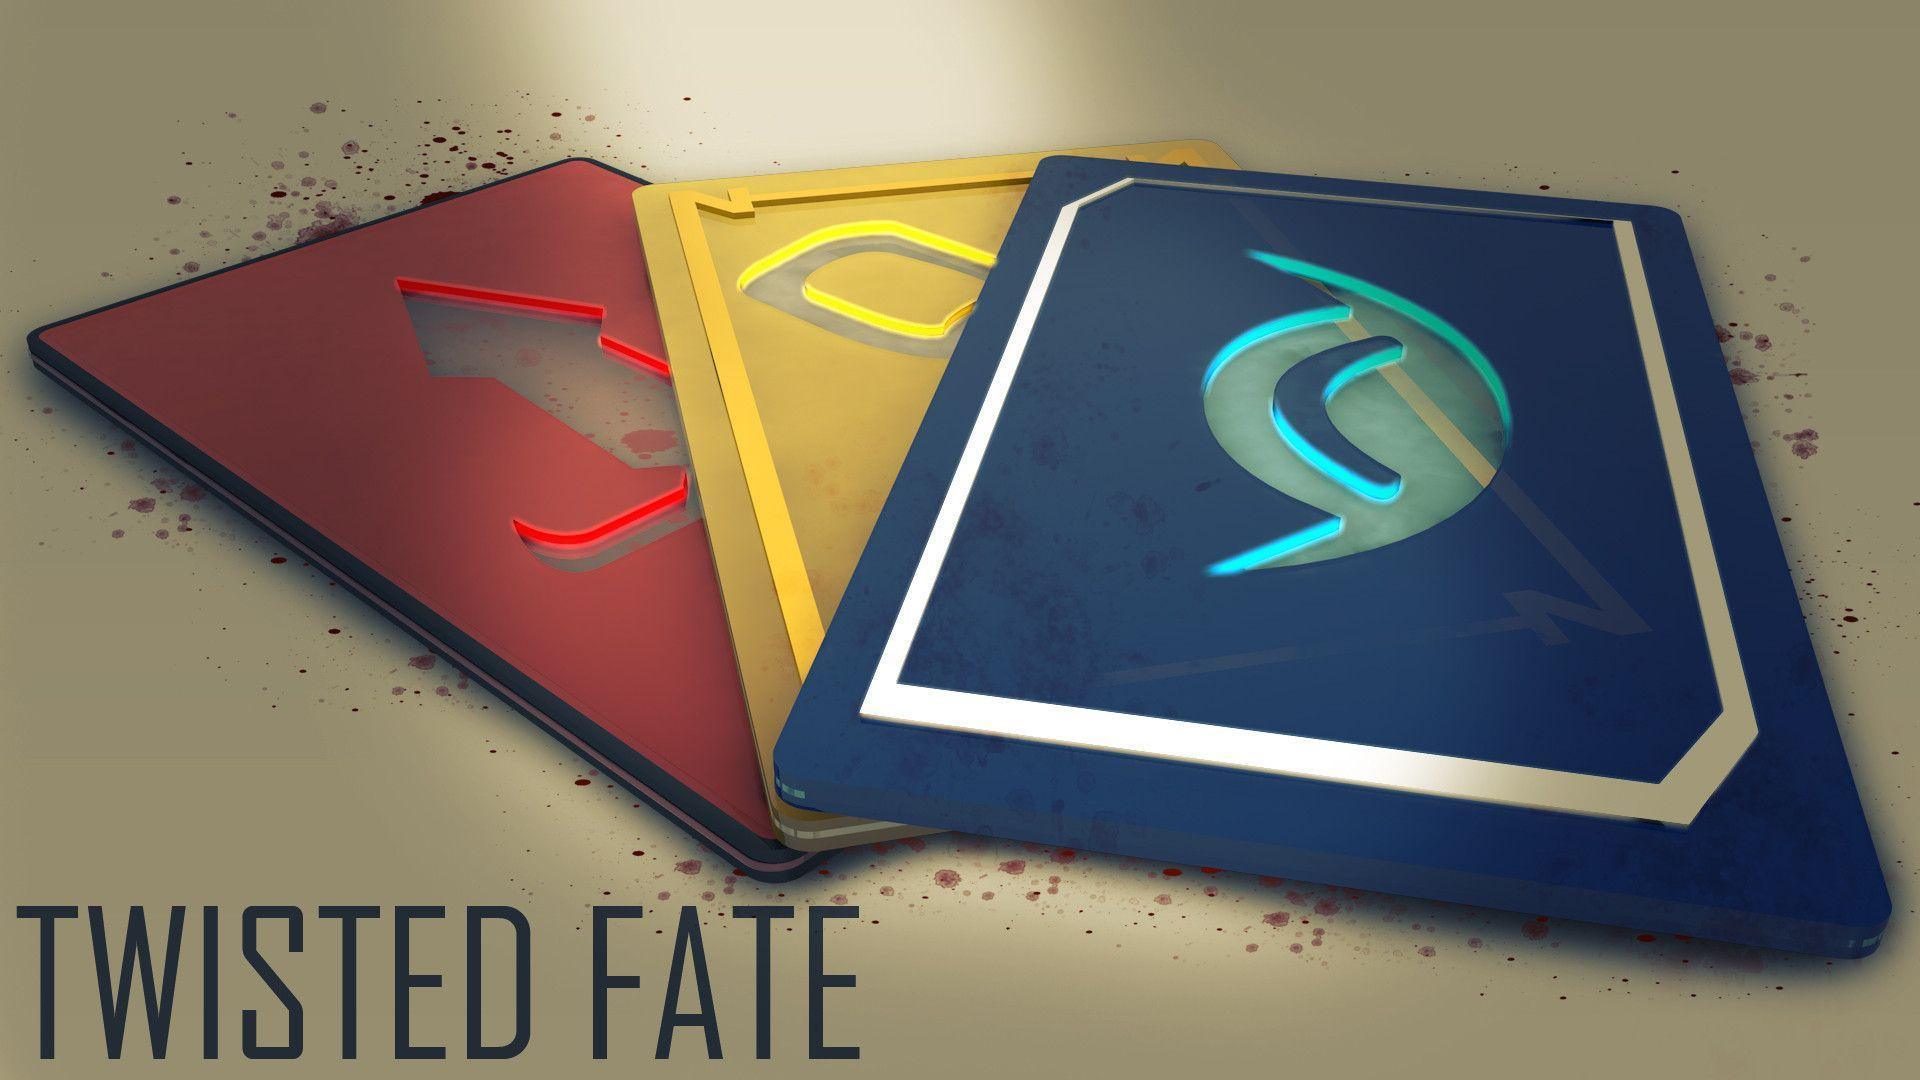 Twisted Fate Wallpapers - Wallpaper Cave